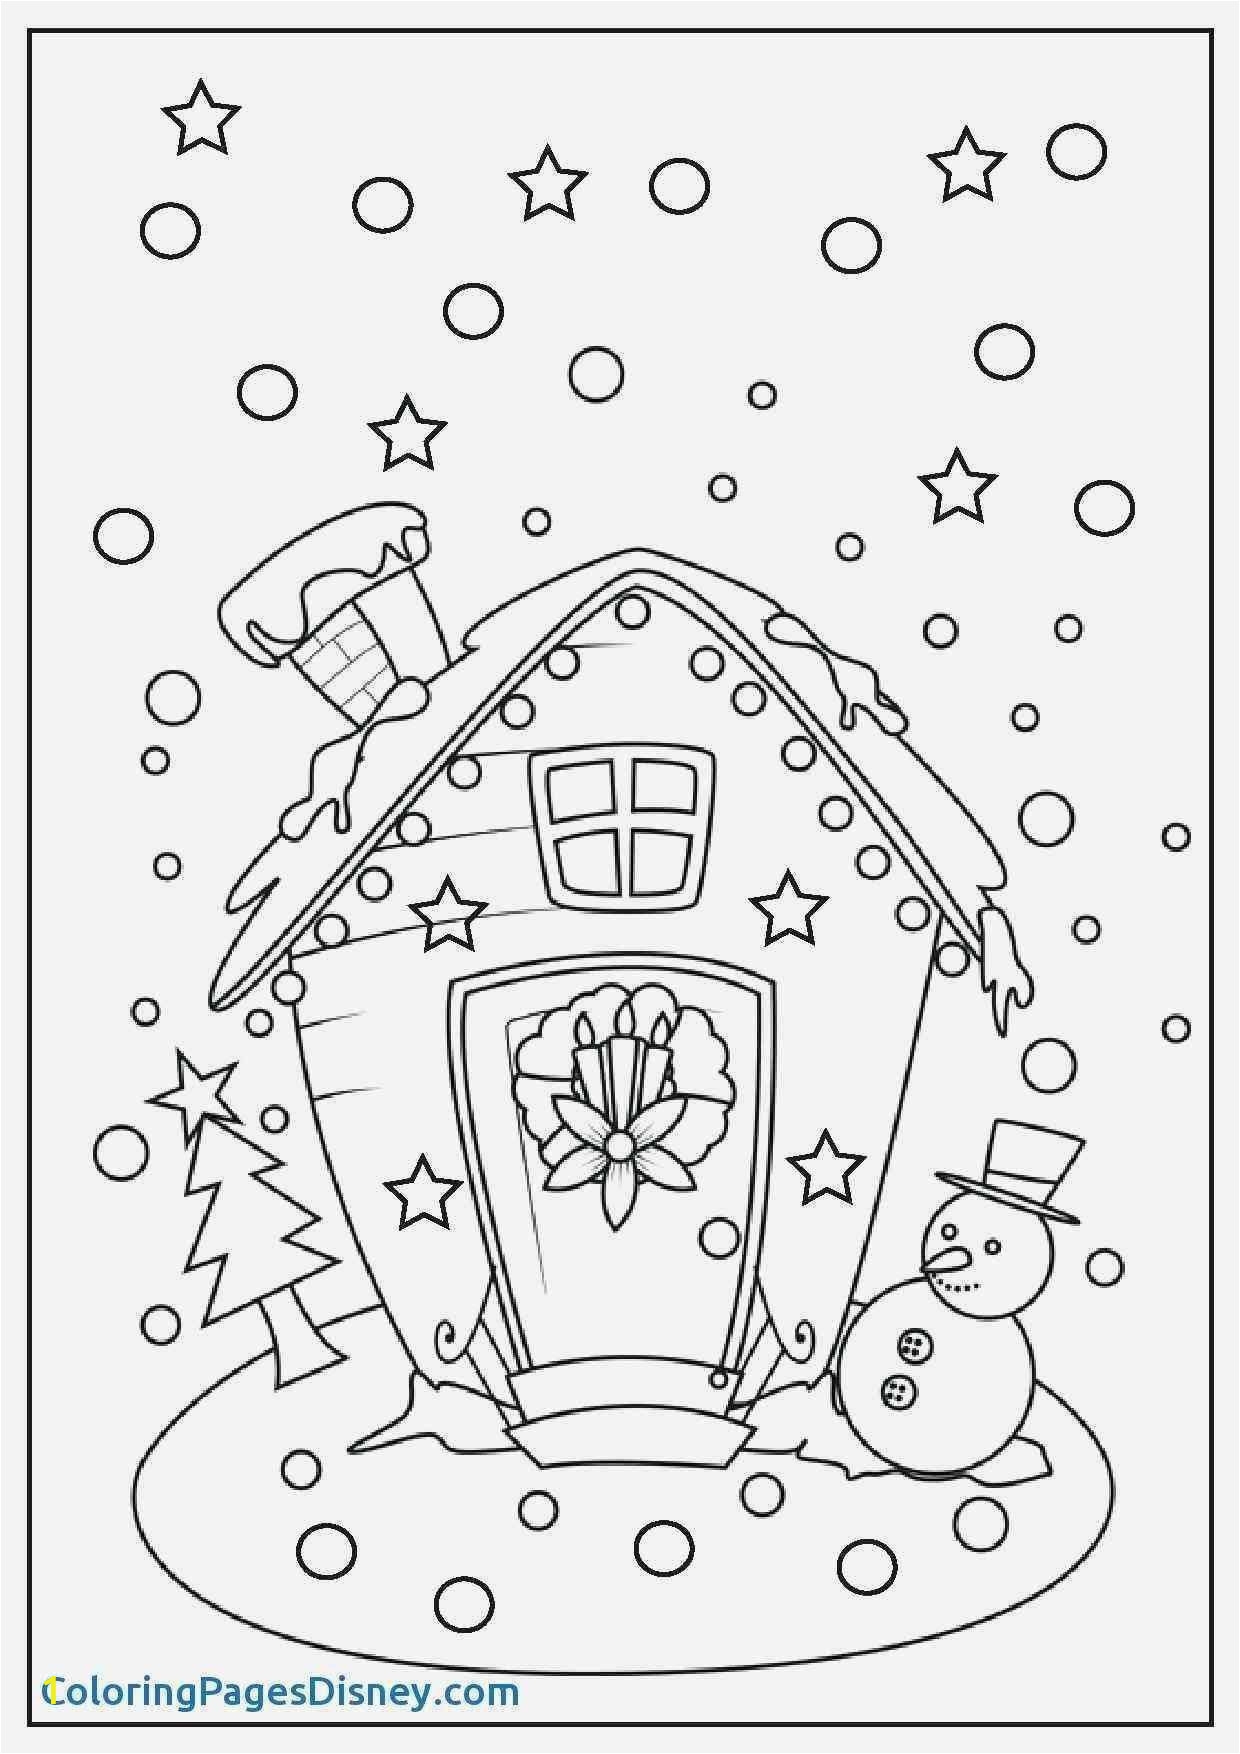 heart with banner coloring page lovely luxury grinch heart coloring page of heart with banner coloring page